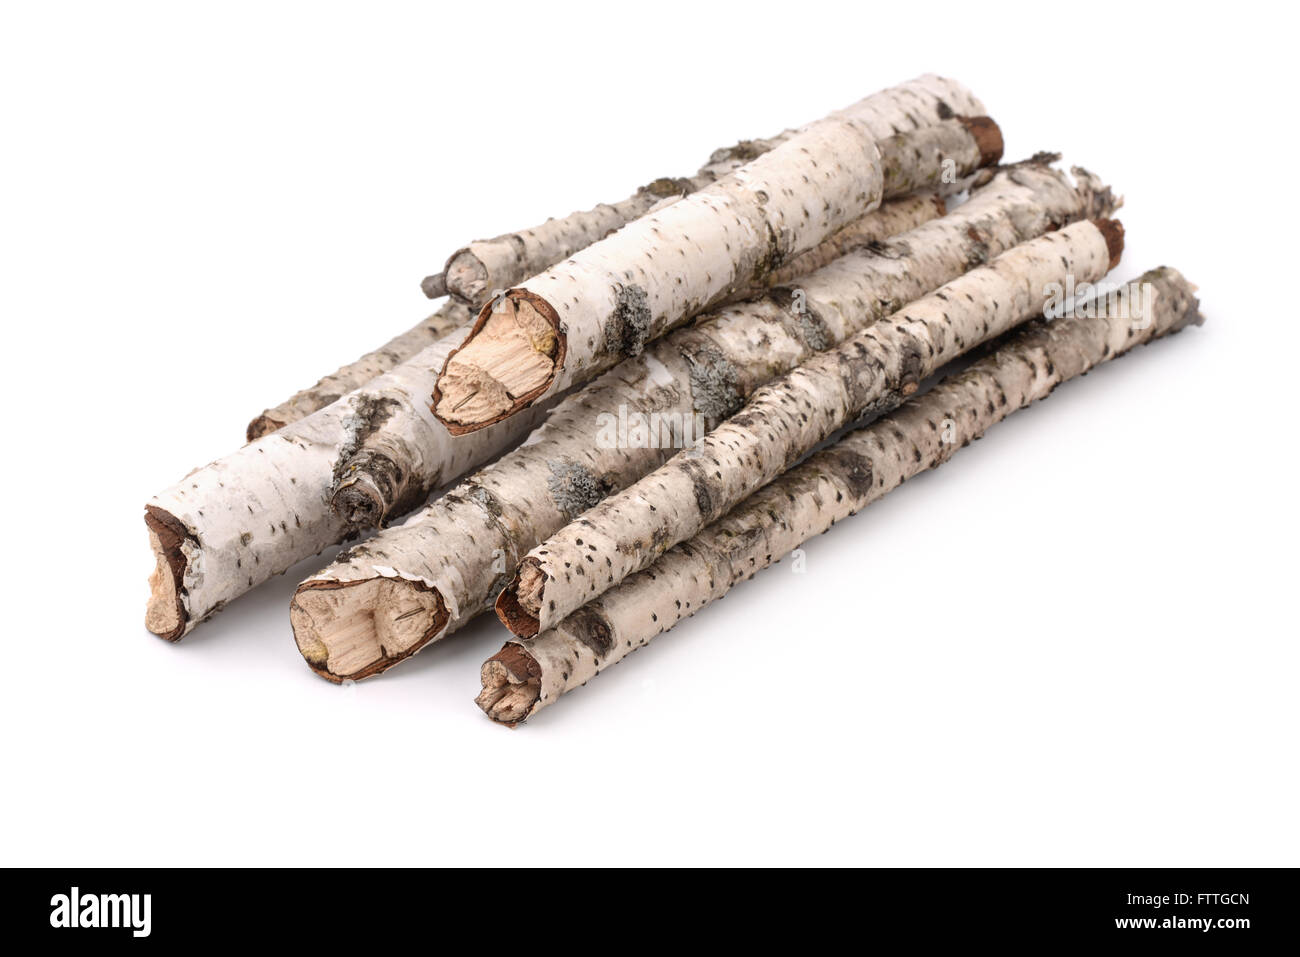 Pile of dry birch twigs isolated on white - Stock Image